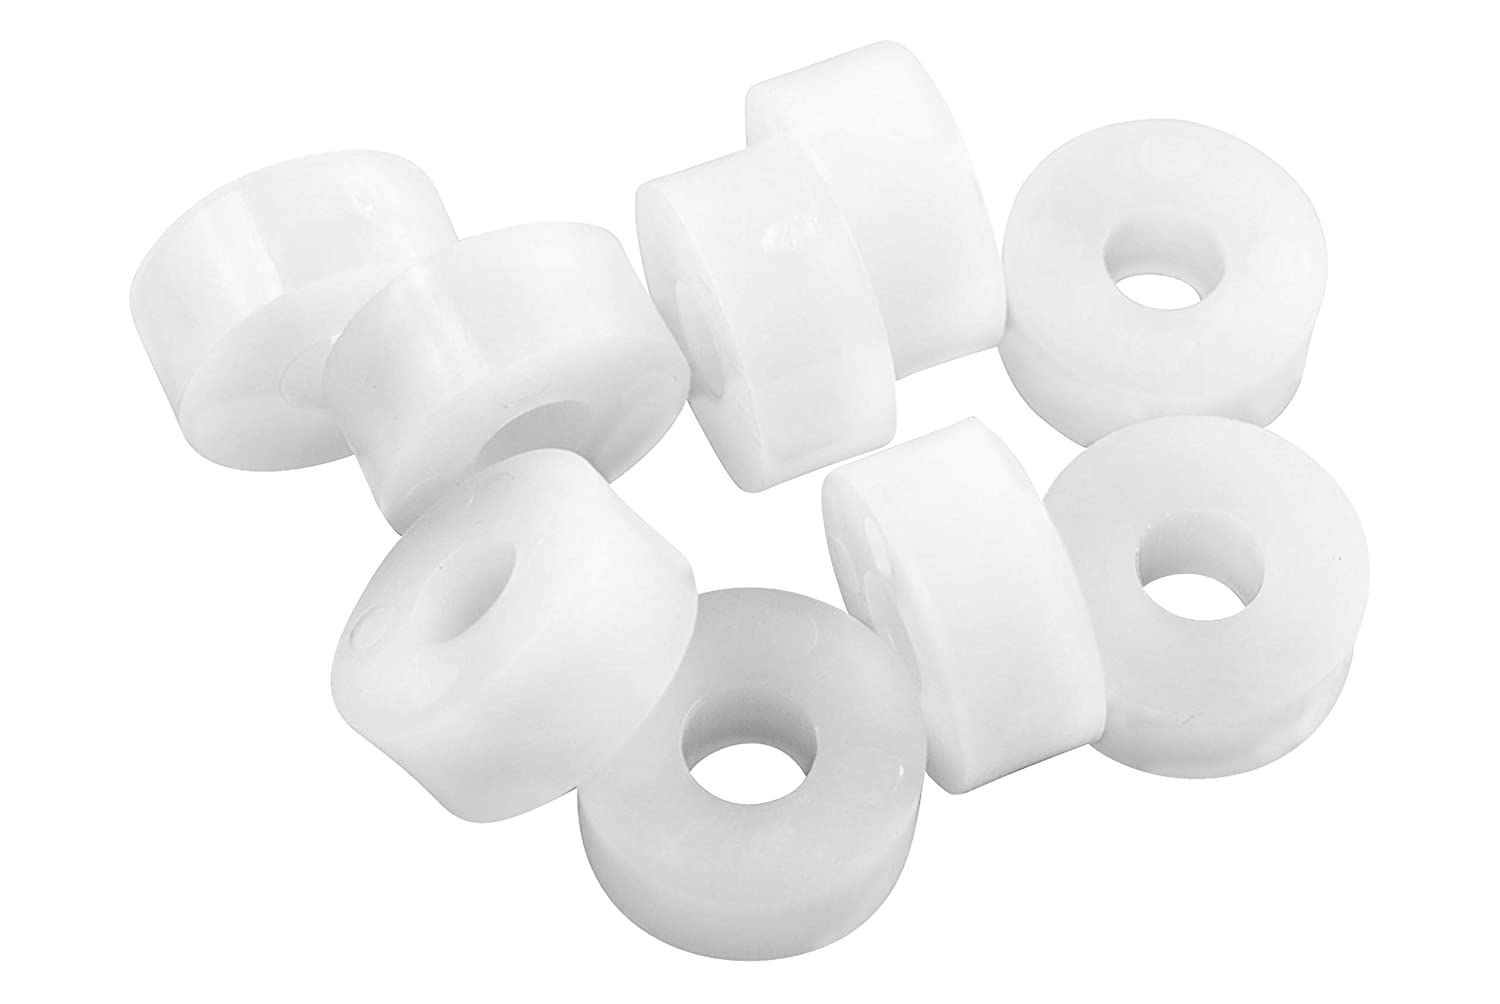 Different Dimensions I spacers I spacers I spacers I washers I Balancing Plates I Black I Natural I Transparent Plastic washers Made of Polyamide as spacers.